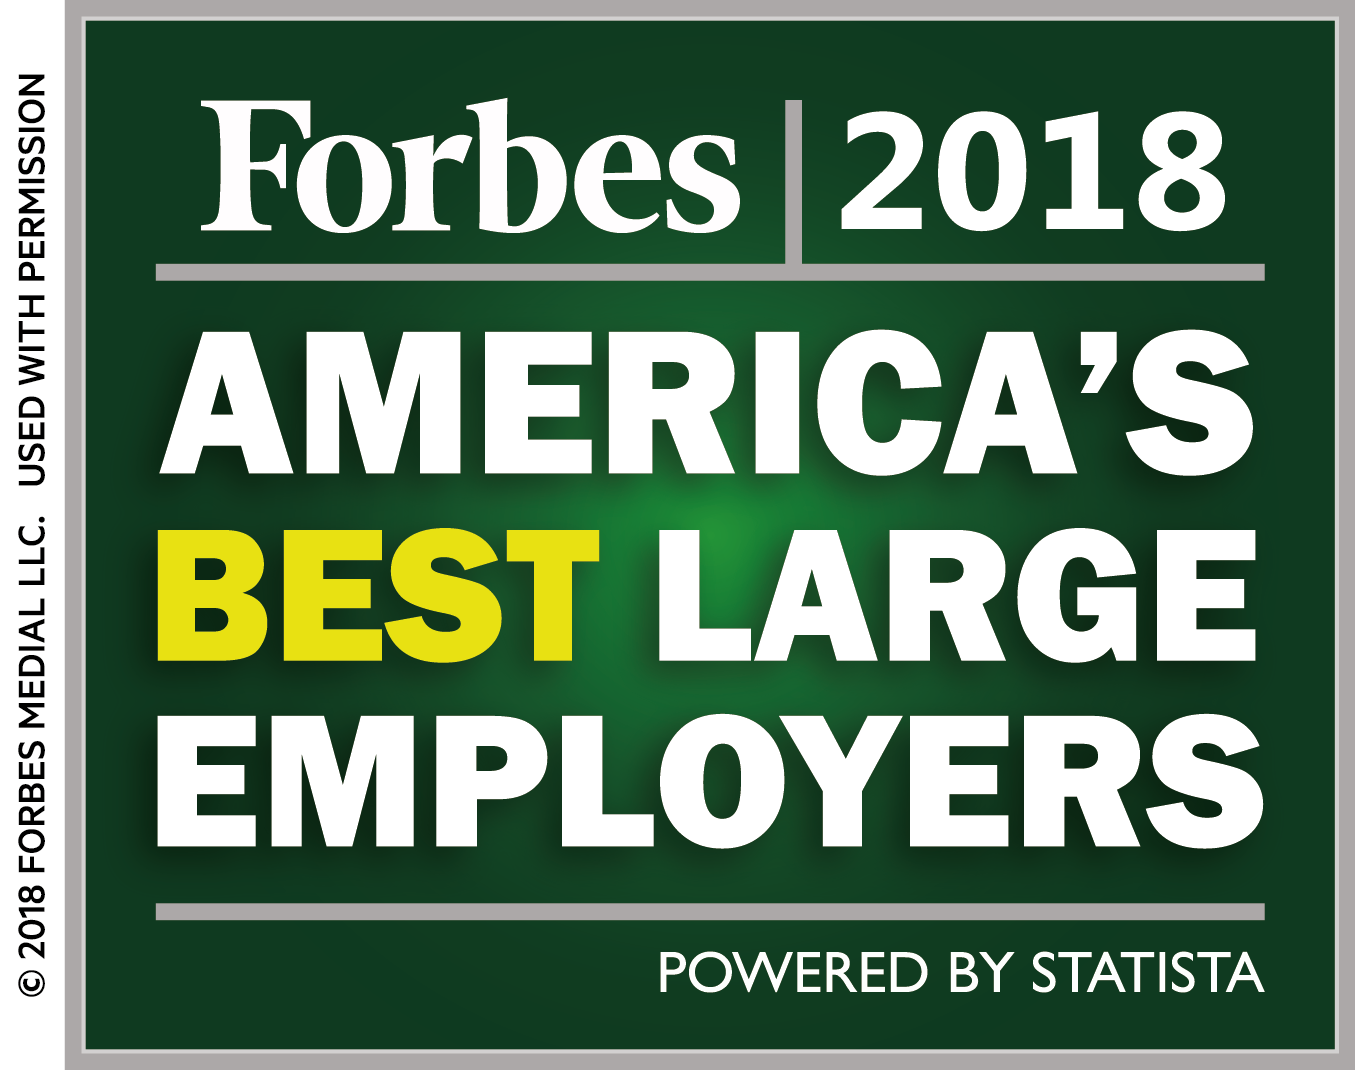 20180209_Forbes_BE_logo_Large_Copyright.png